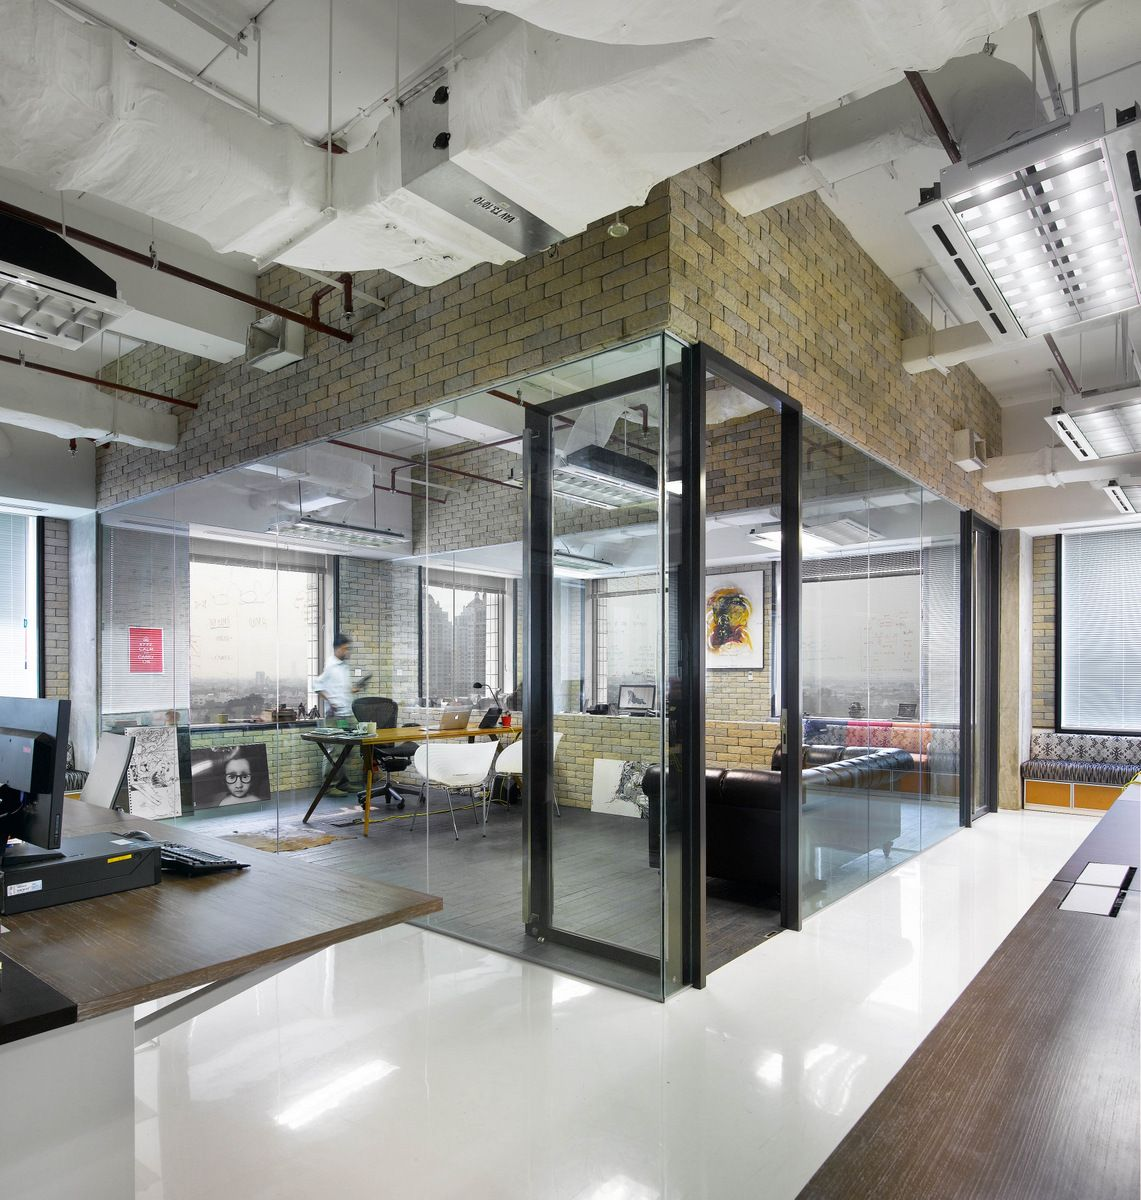 Office Space Design Ideas interior design office space ideas office space interior design Gorgeous Office Space Bates 141 M Moser Associates Reclaimed Warehouse Space Concrete Glass Office Space